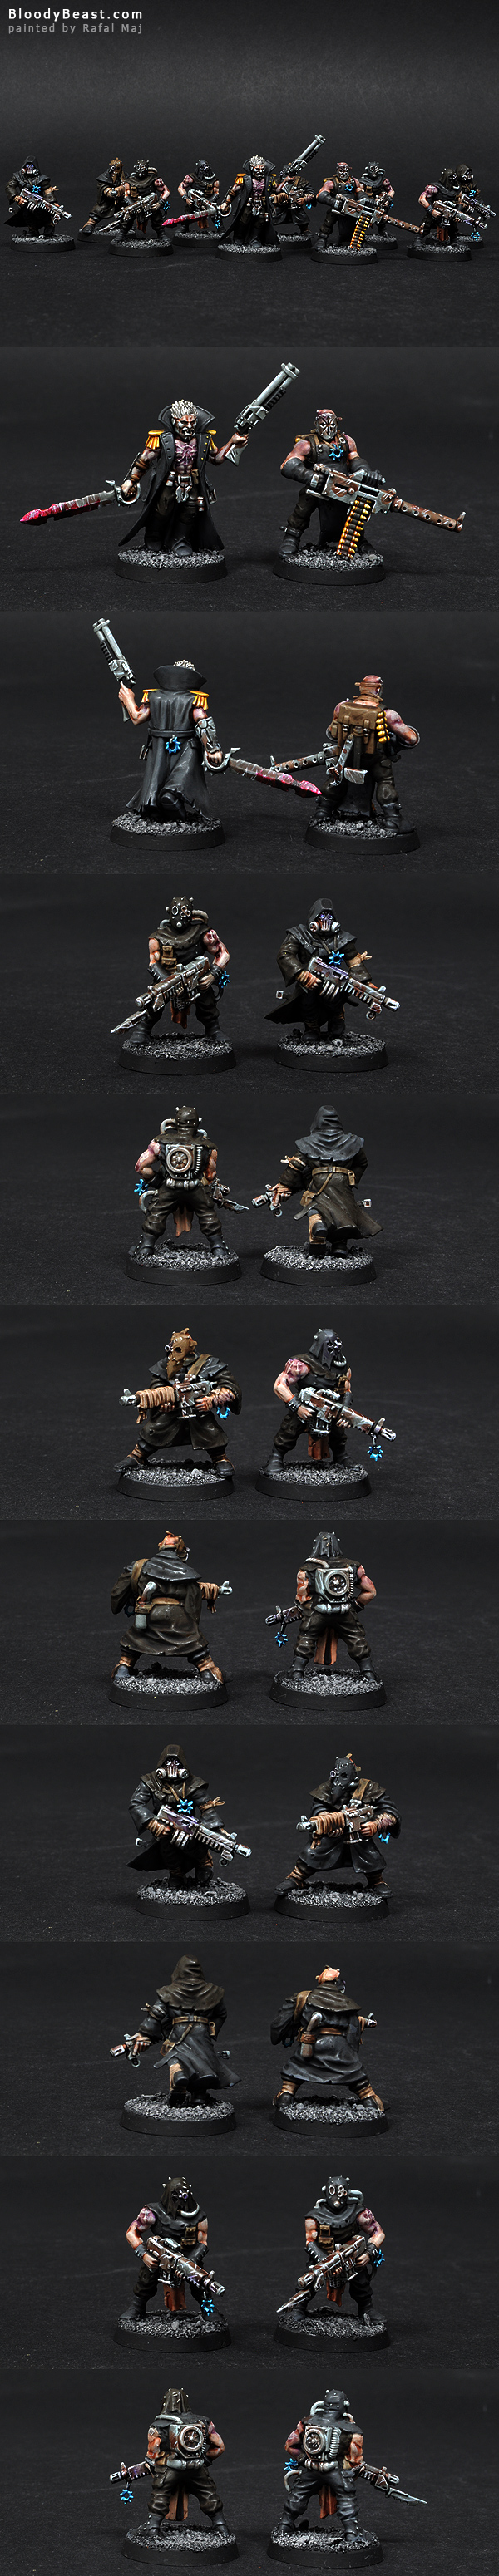 Chaos Space Marines Chaos Cultists with Autoguns painted by Rafal Maj (BloodyBeast.com)